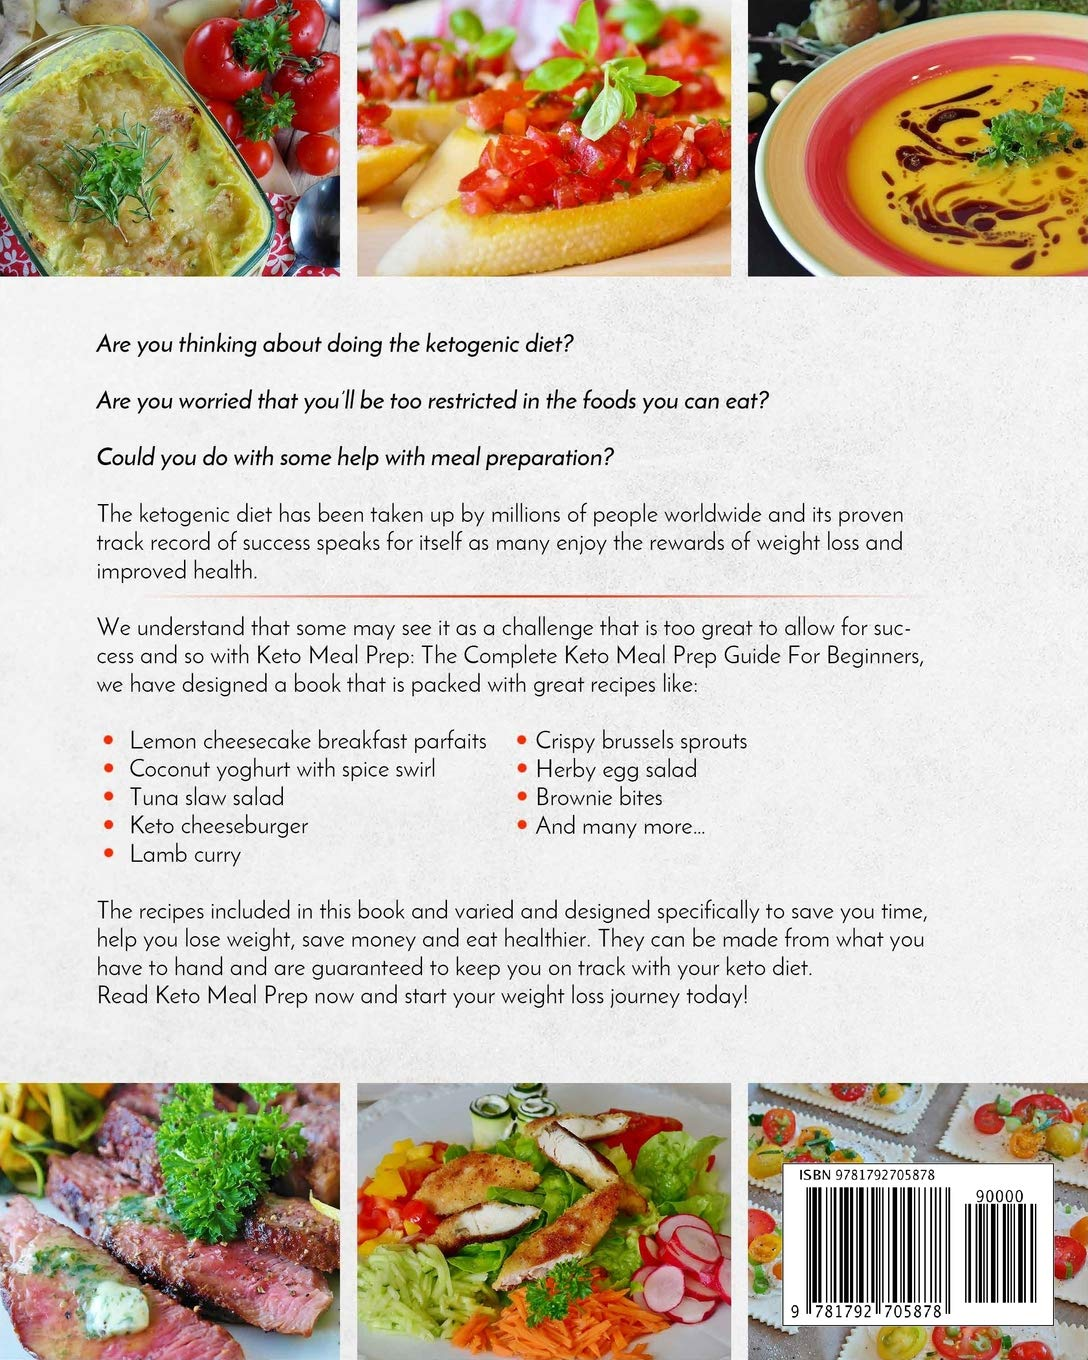 Keto Meal Prep: The Complete Keto Meal Prep Guide For